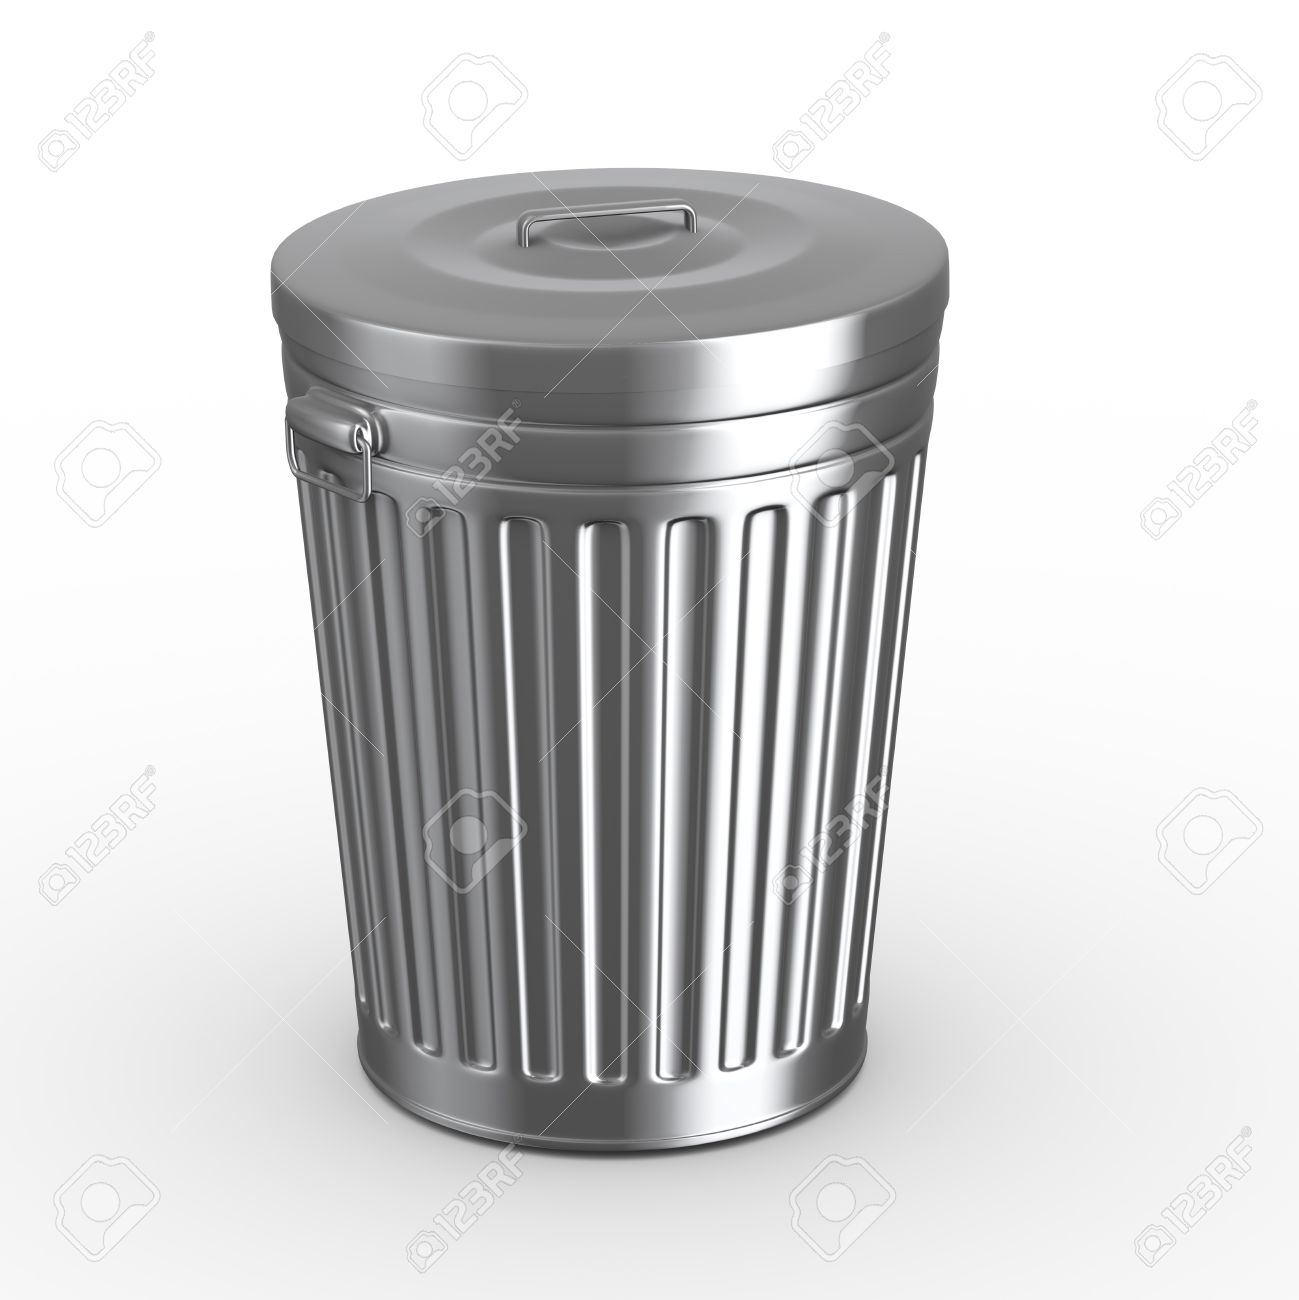 3d illustration of closed steel shiny metal trash can bin white